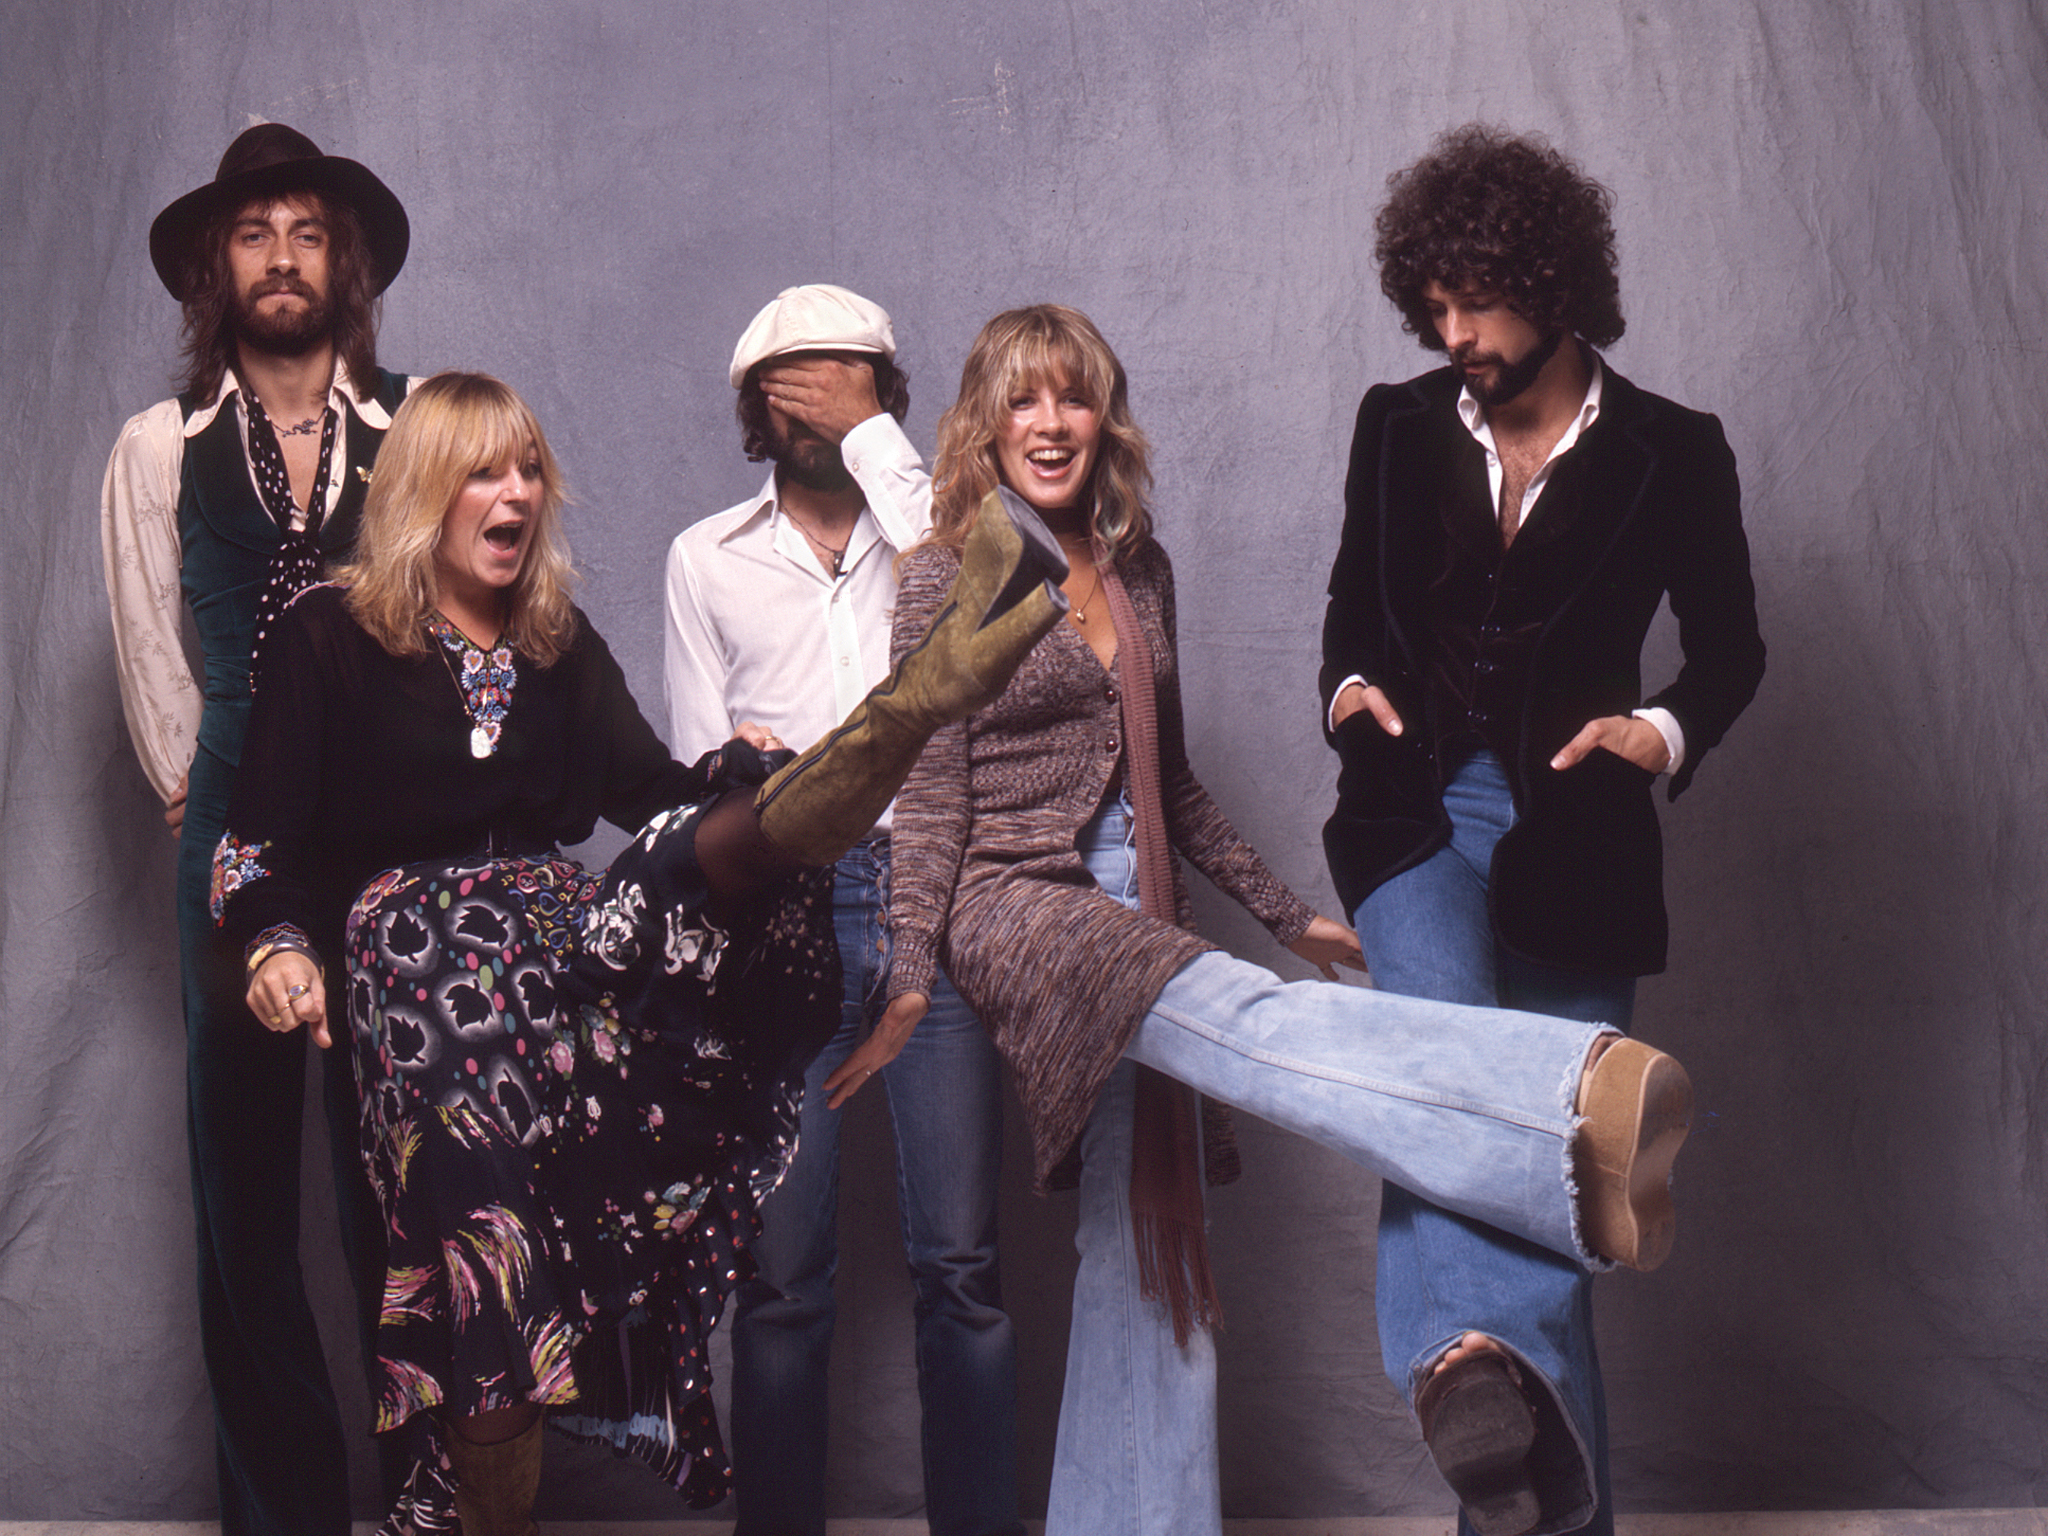 15 amazing pictures of Fleetwood Mac, from 1969 to now